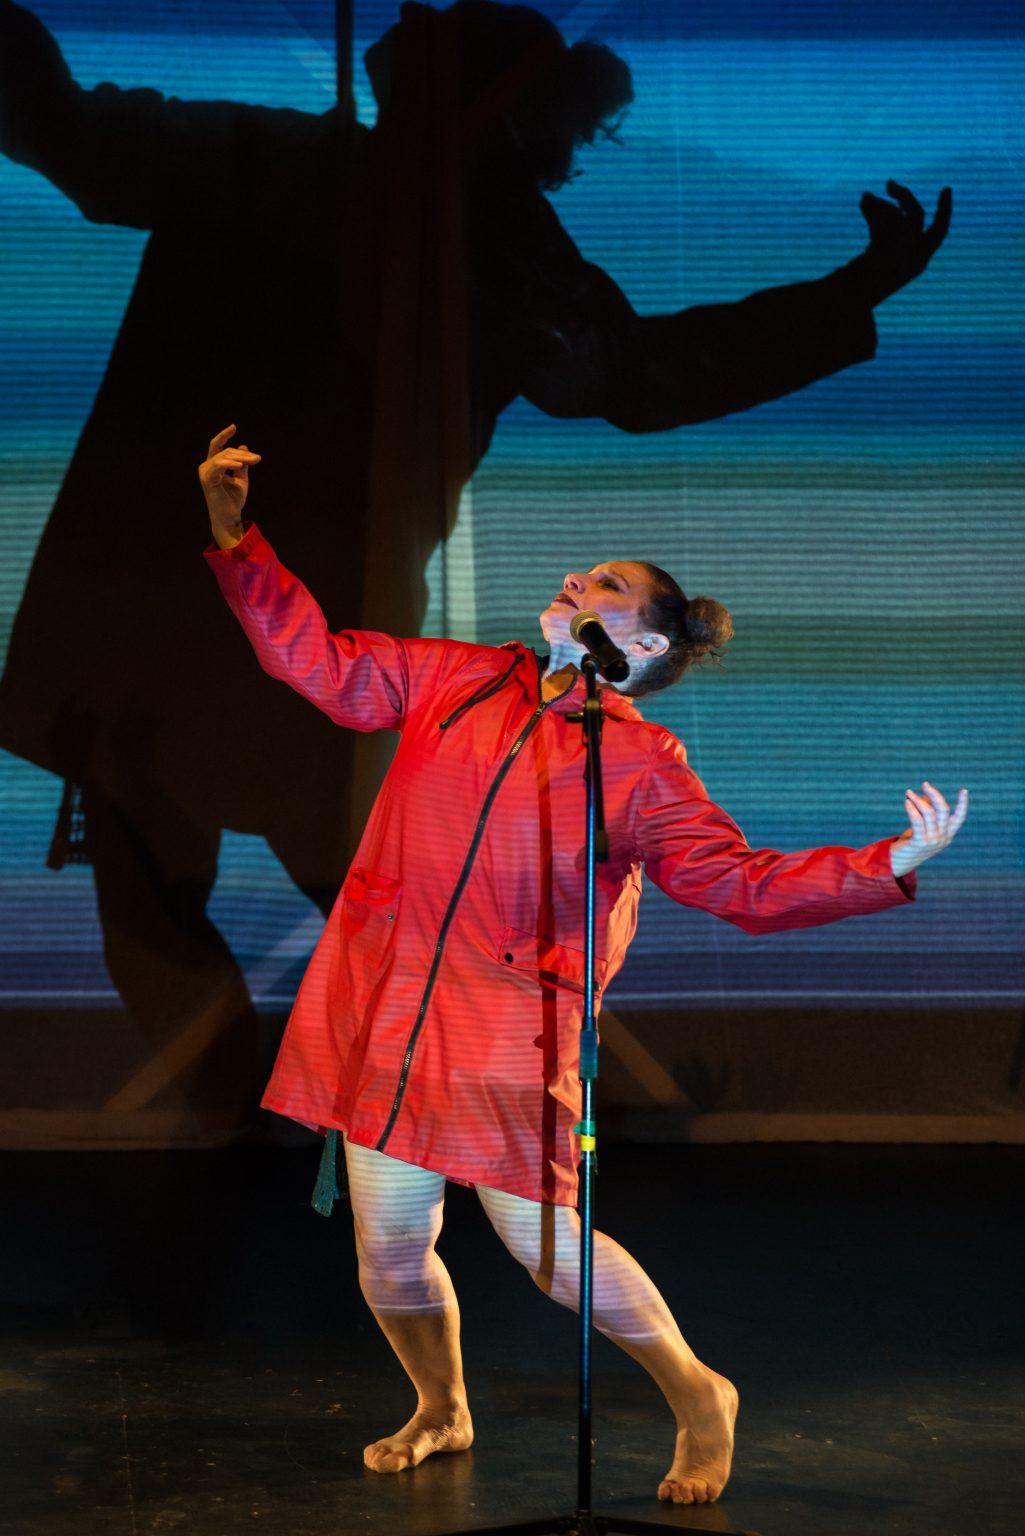 A woman dancing on stage. A blue, patterned light shines on her from the front, casting her shadow against the back wall.